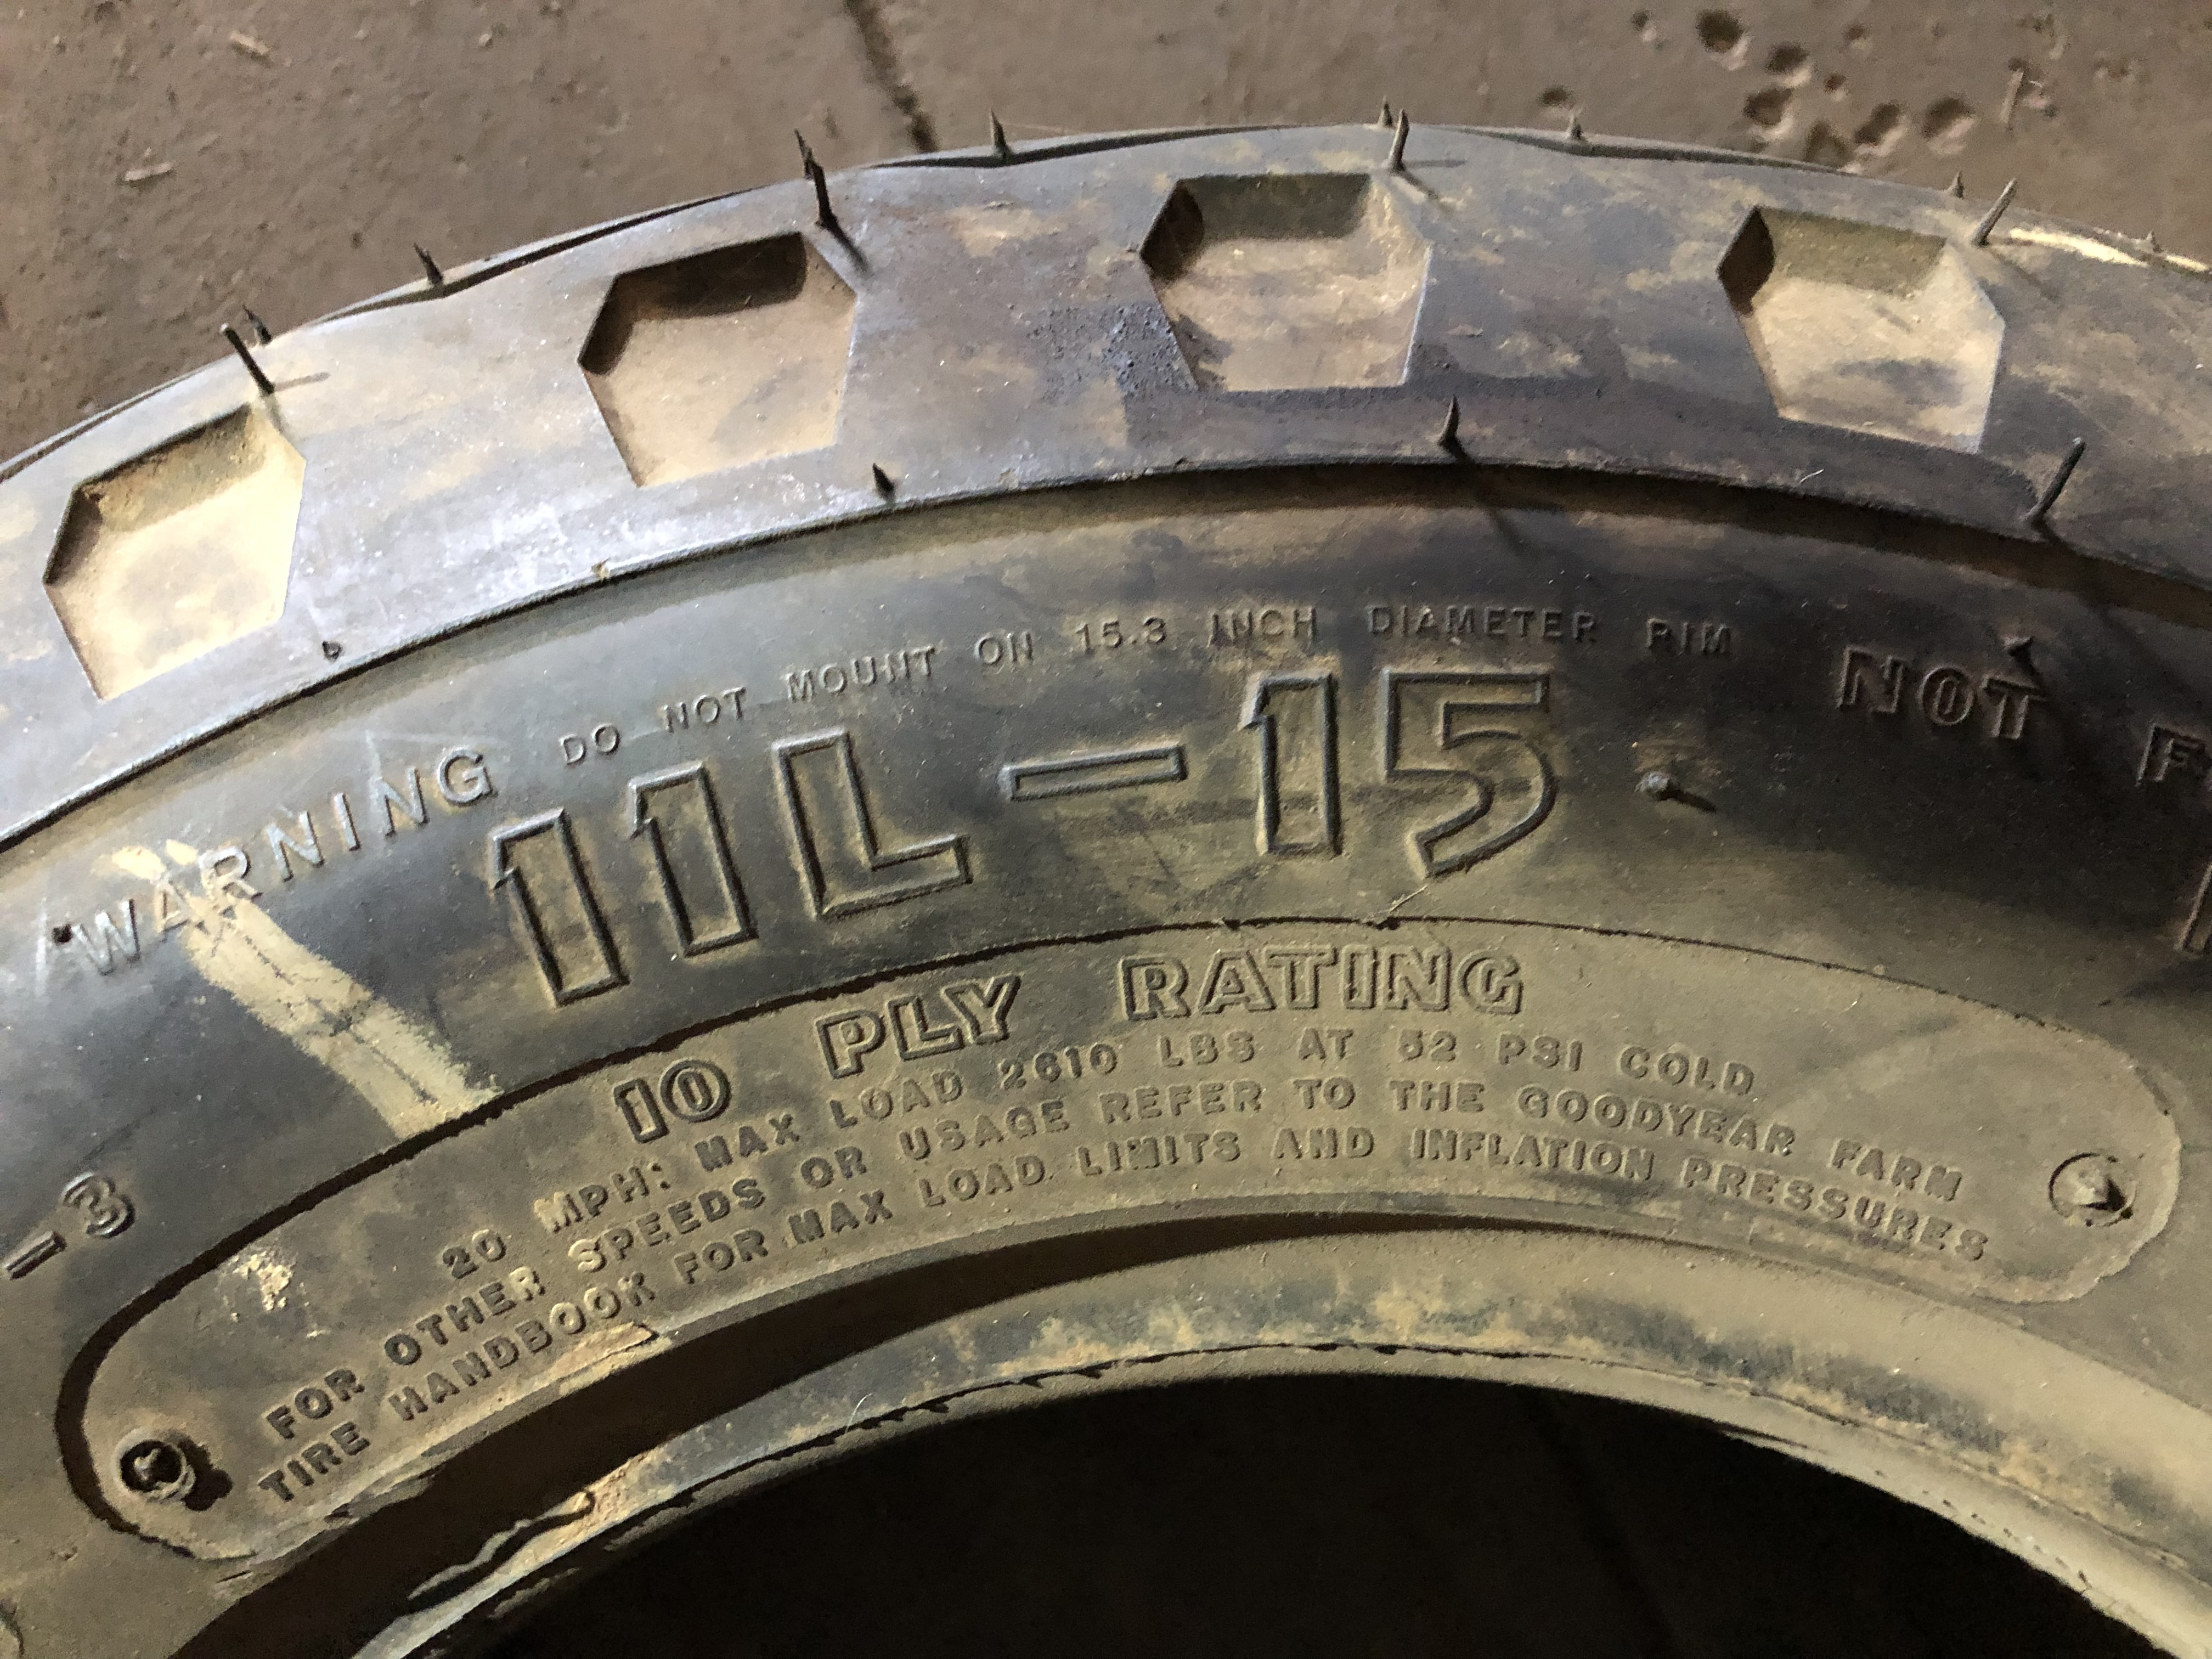 11L15 Goodyear Laborer Implement Tyre